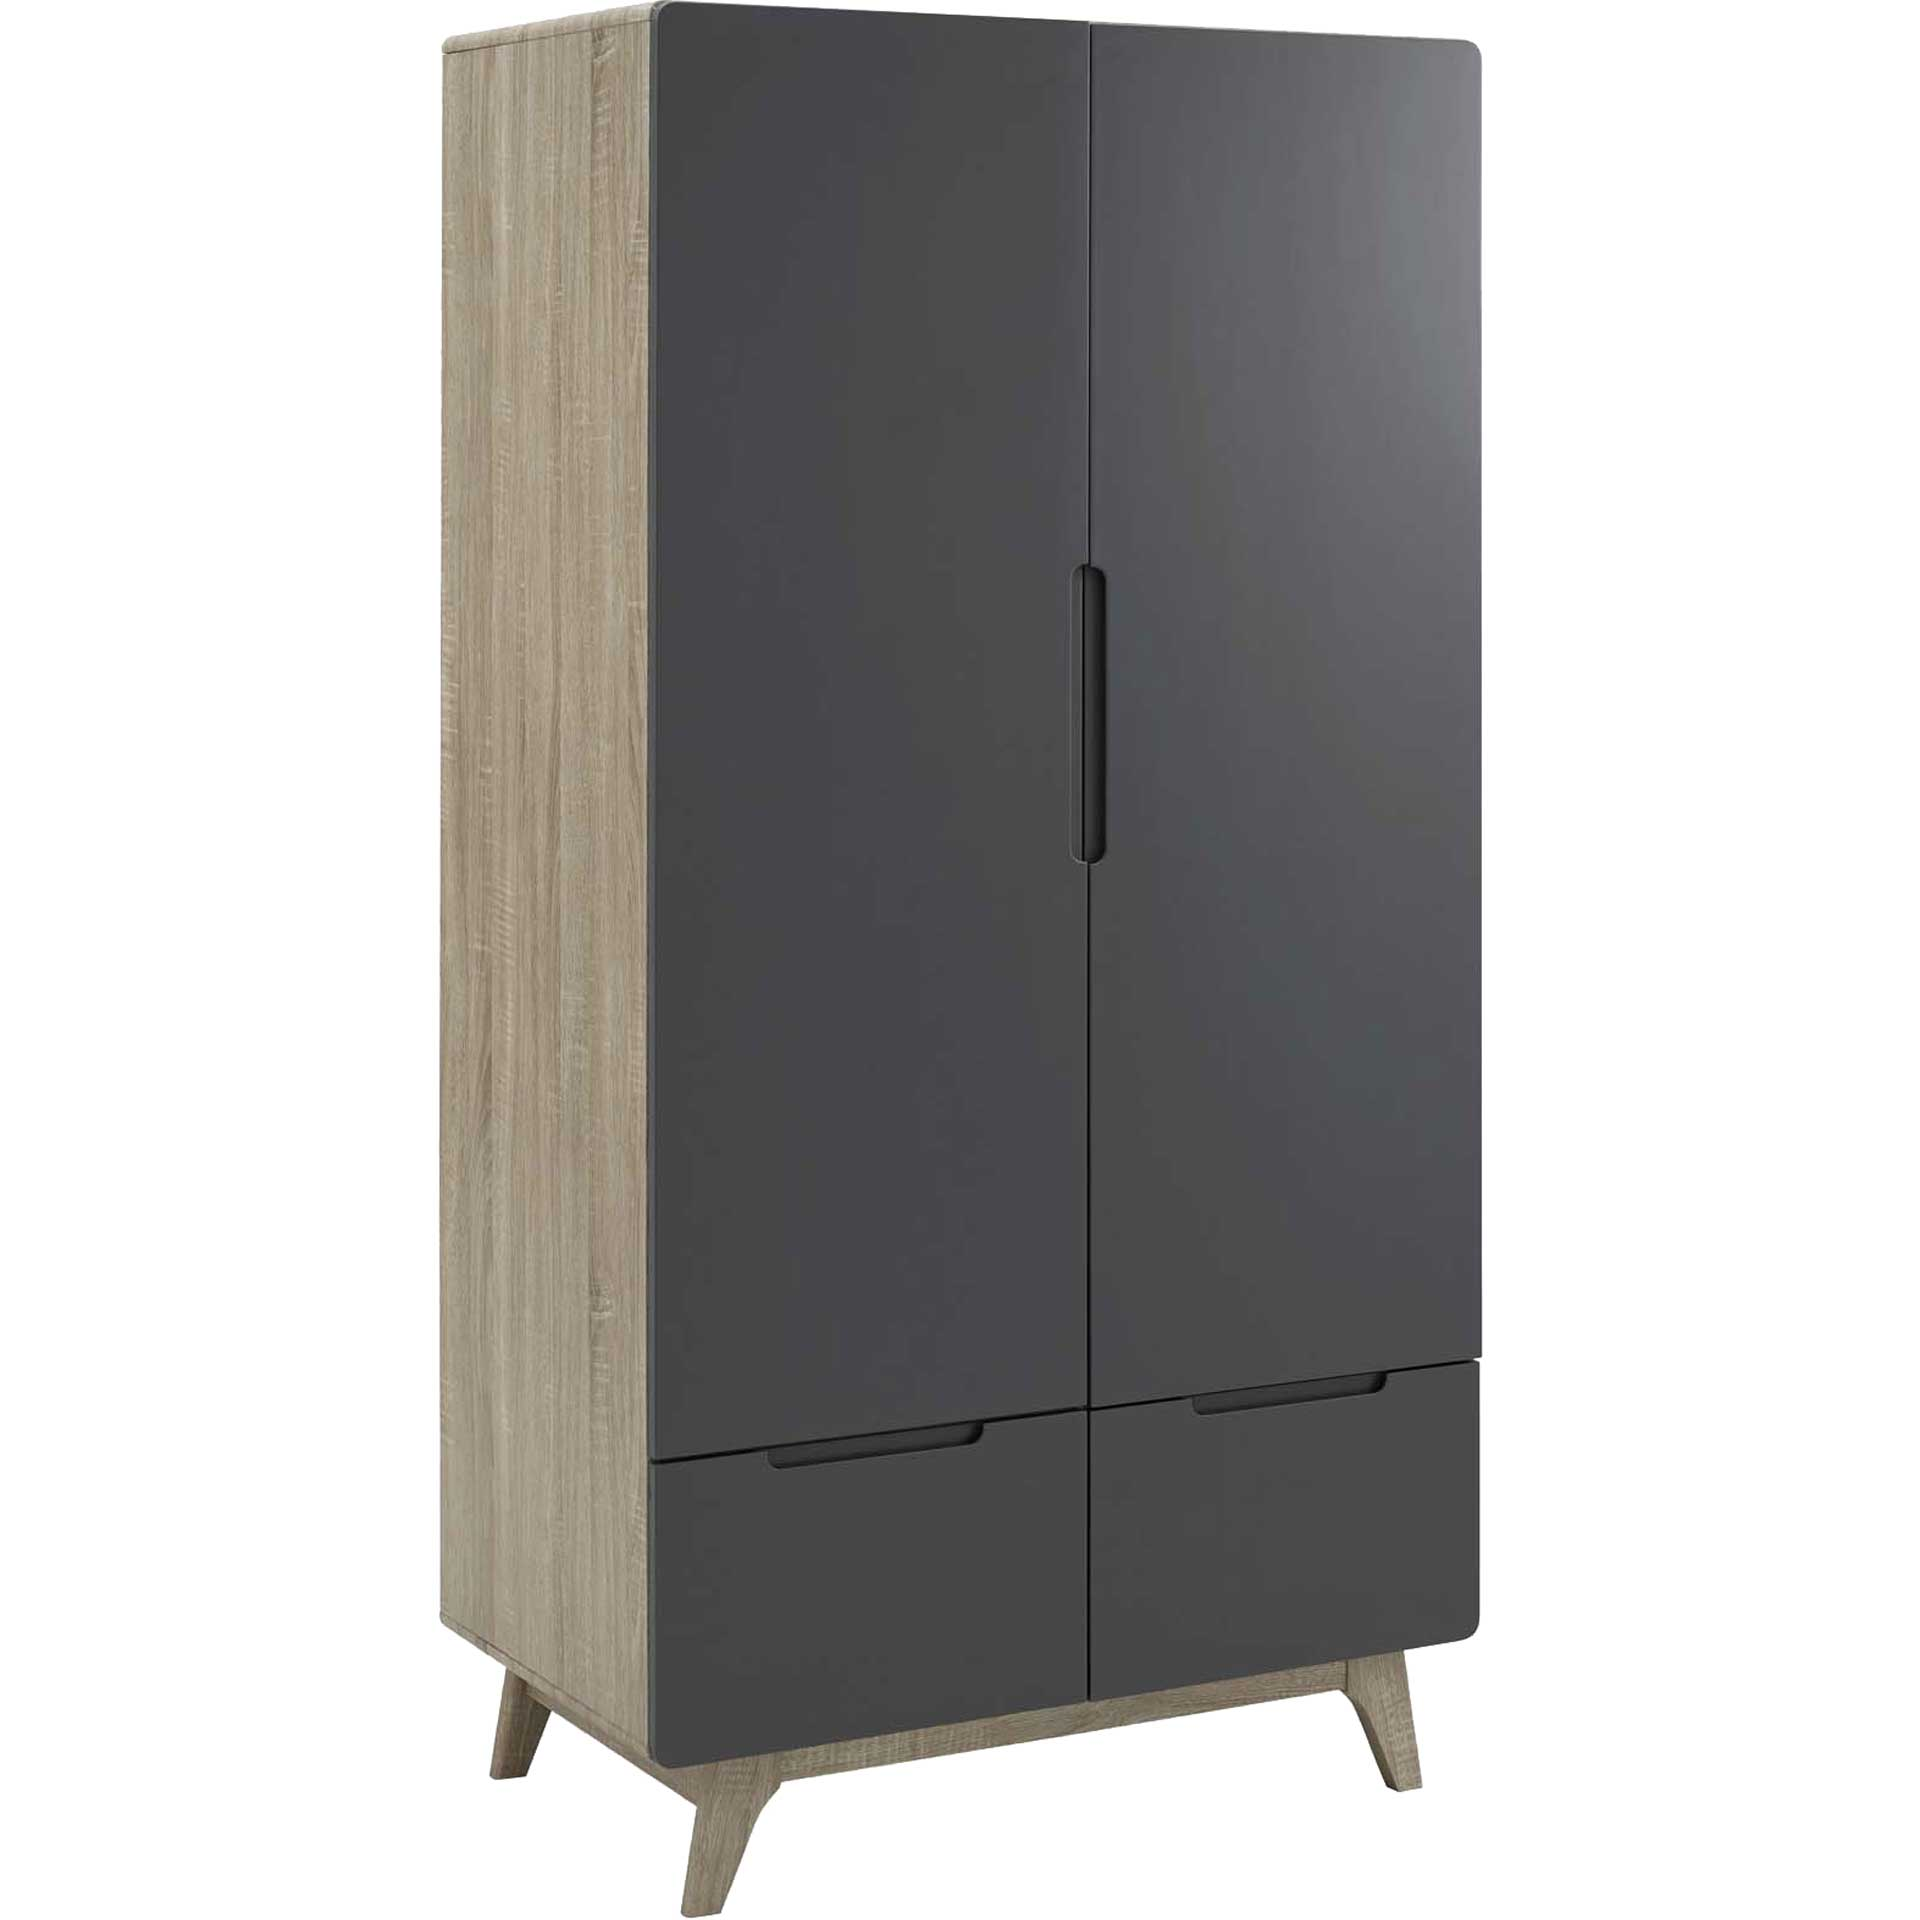 Orion Wood Wardrobe Cabinet Natural Gray